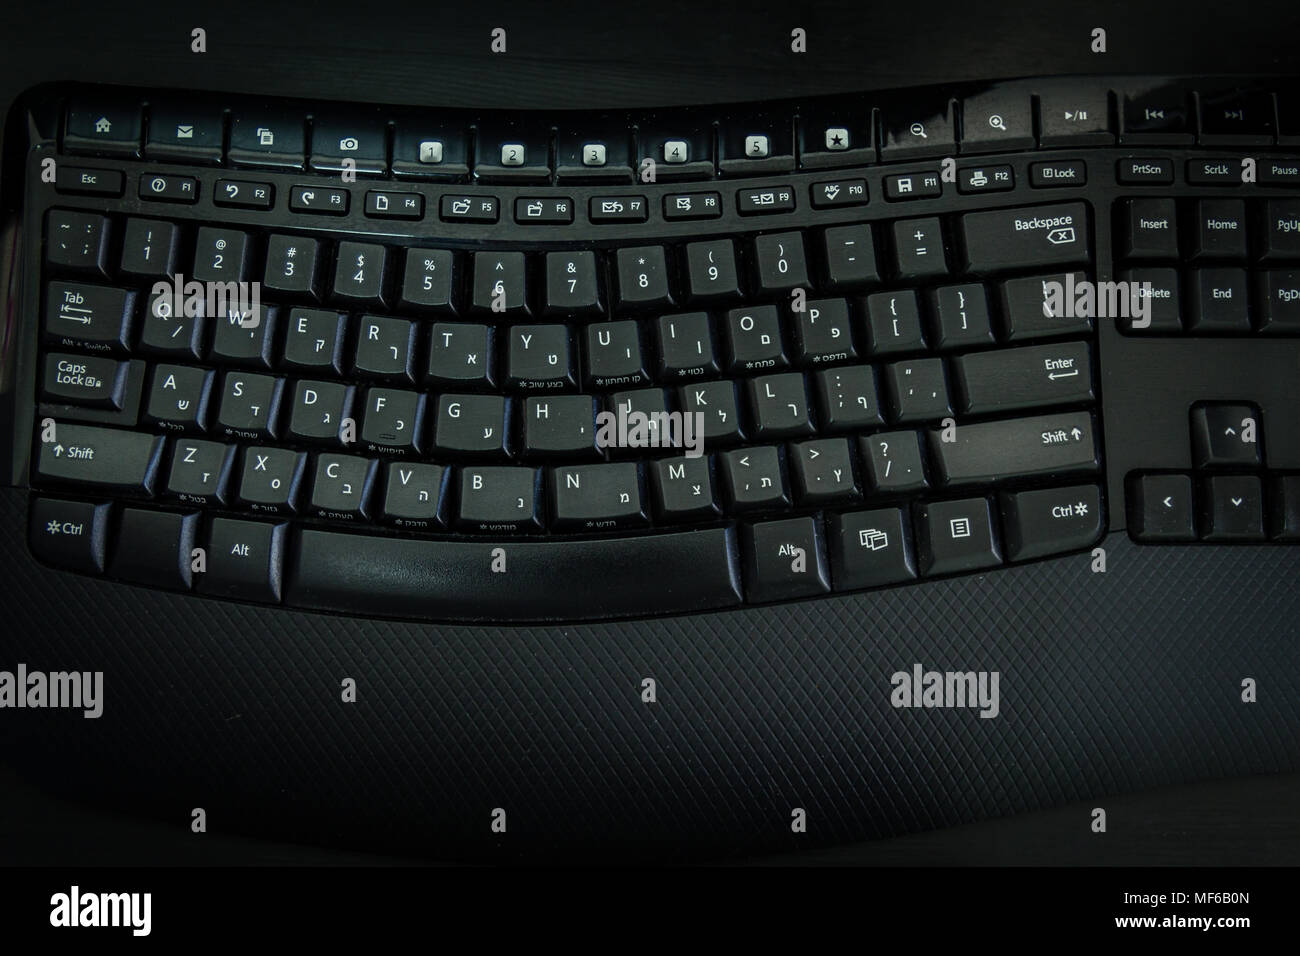 Keyboard with letters in Hebrew and English - Wireless keyboard - Top View -  Dark atmosphere - Stock Image